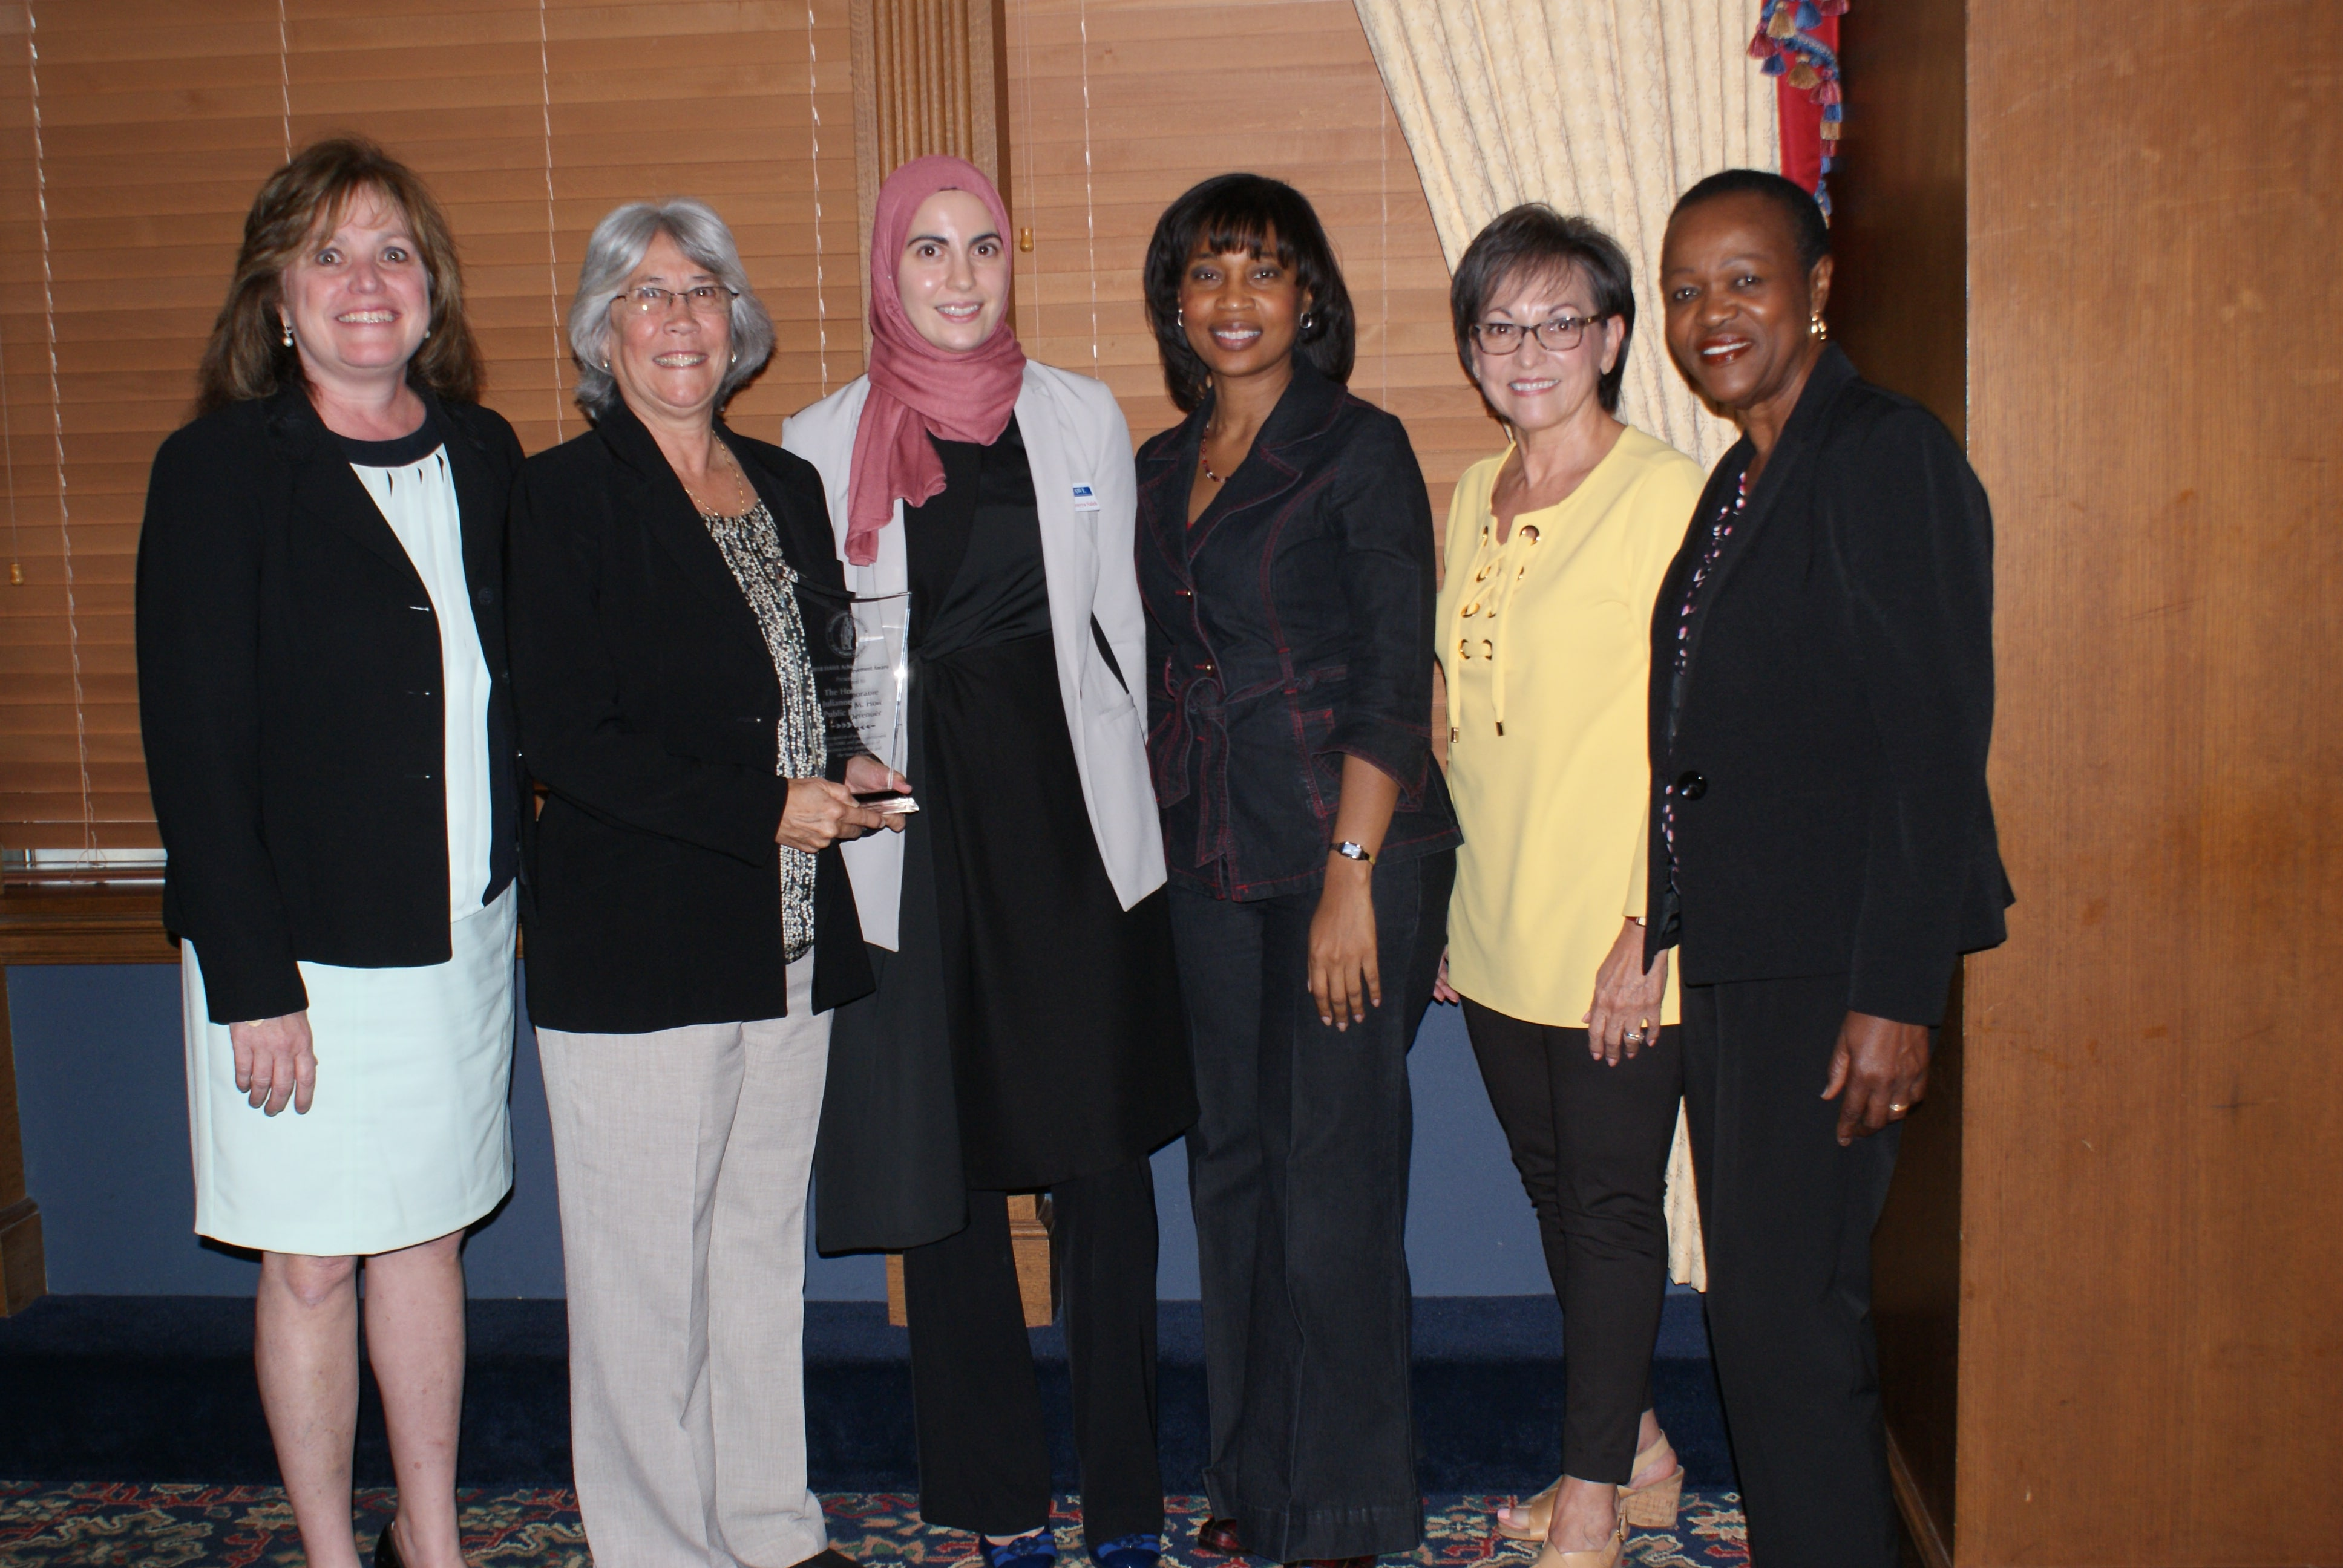 Ms. Holt was recognized by the Hillsborough Association for Women Lawyers (HAWL) for female attorneys who have made meaningful                     contributions to the community through their legal service or volunteer activities